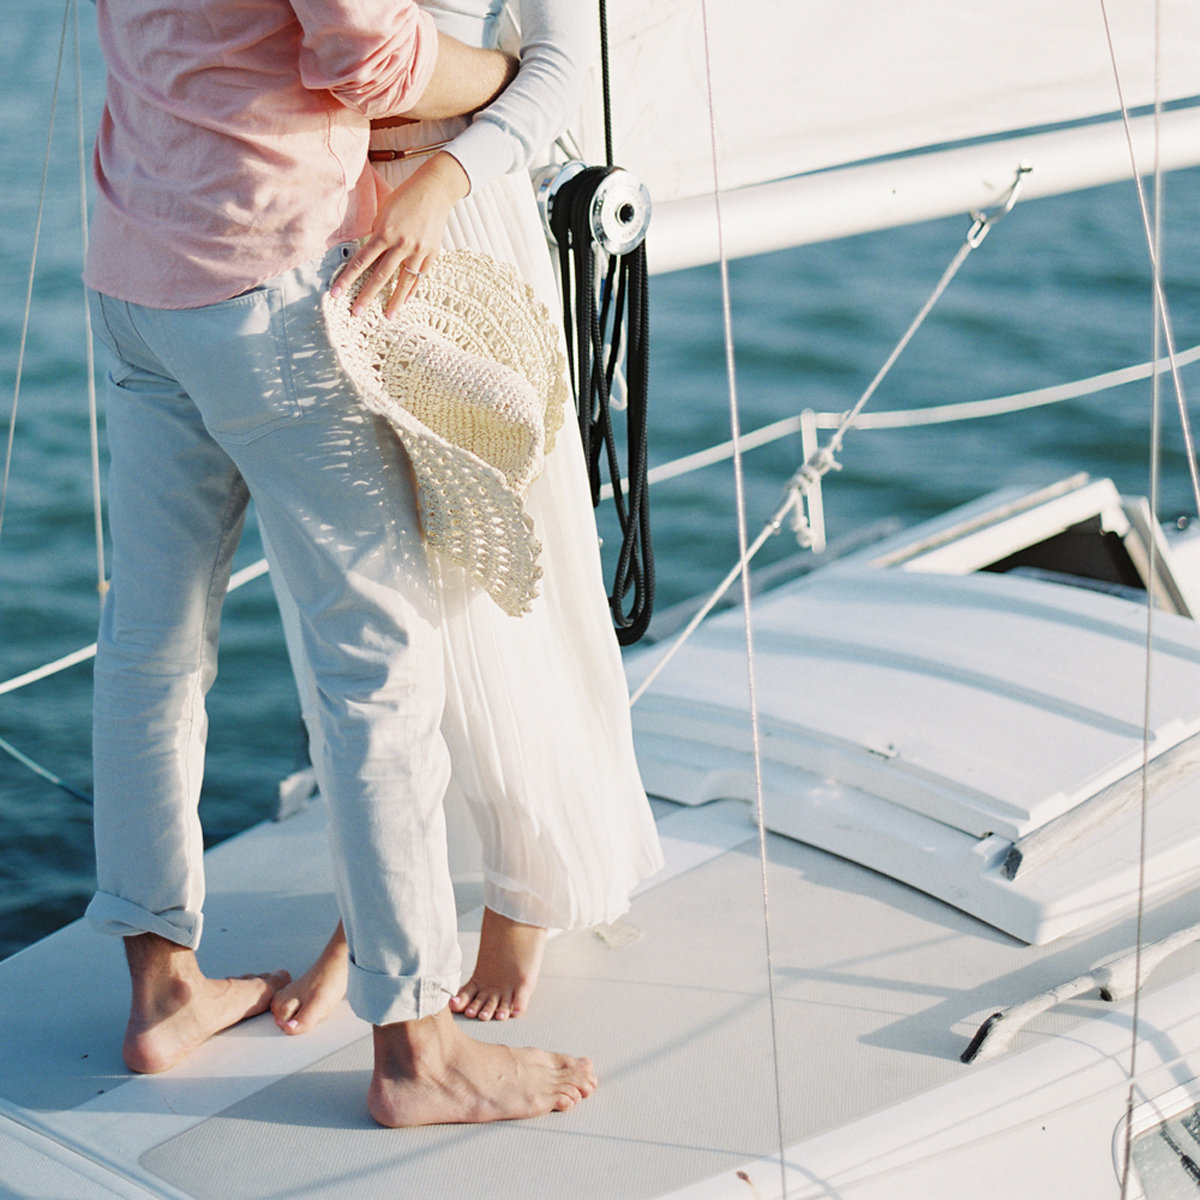 kayla_jon_vizcaya_sailboat_engagement_melanie_gabrielle_photography_39